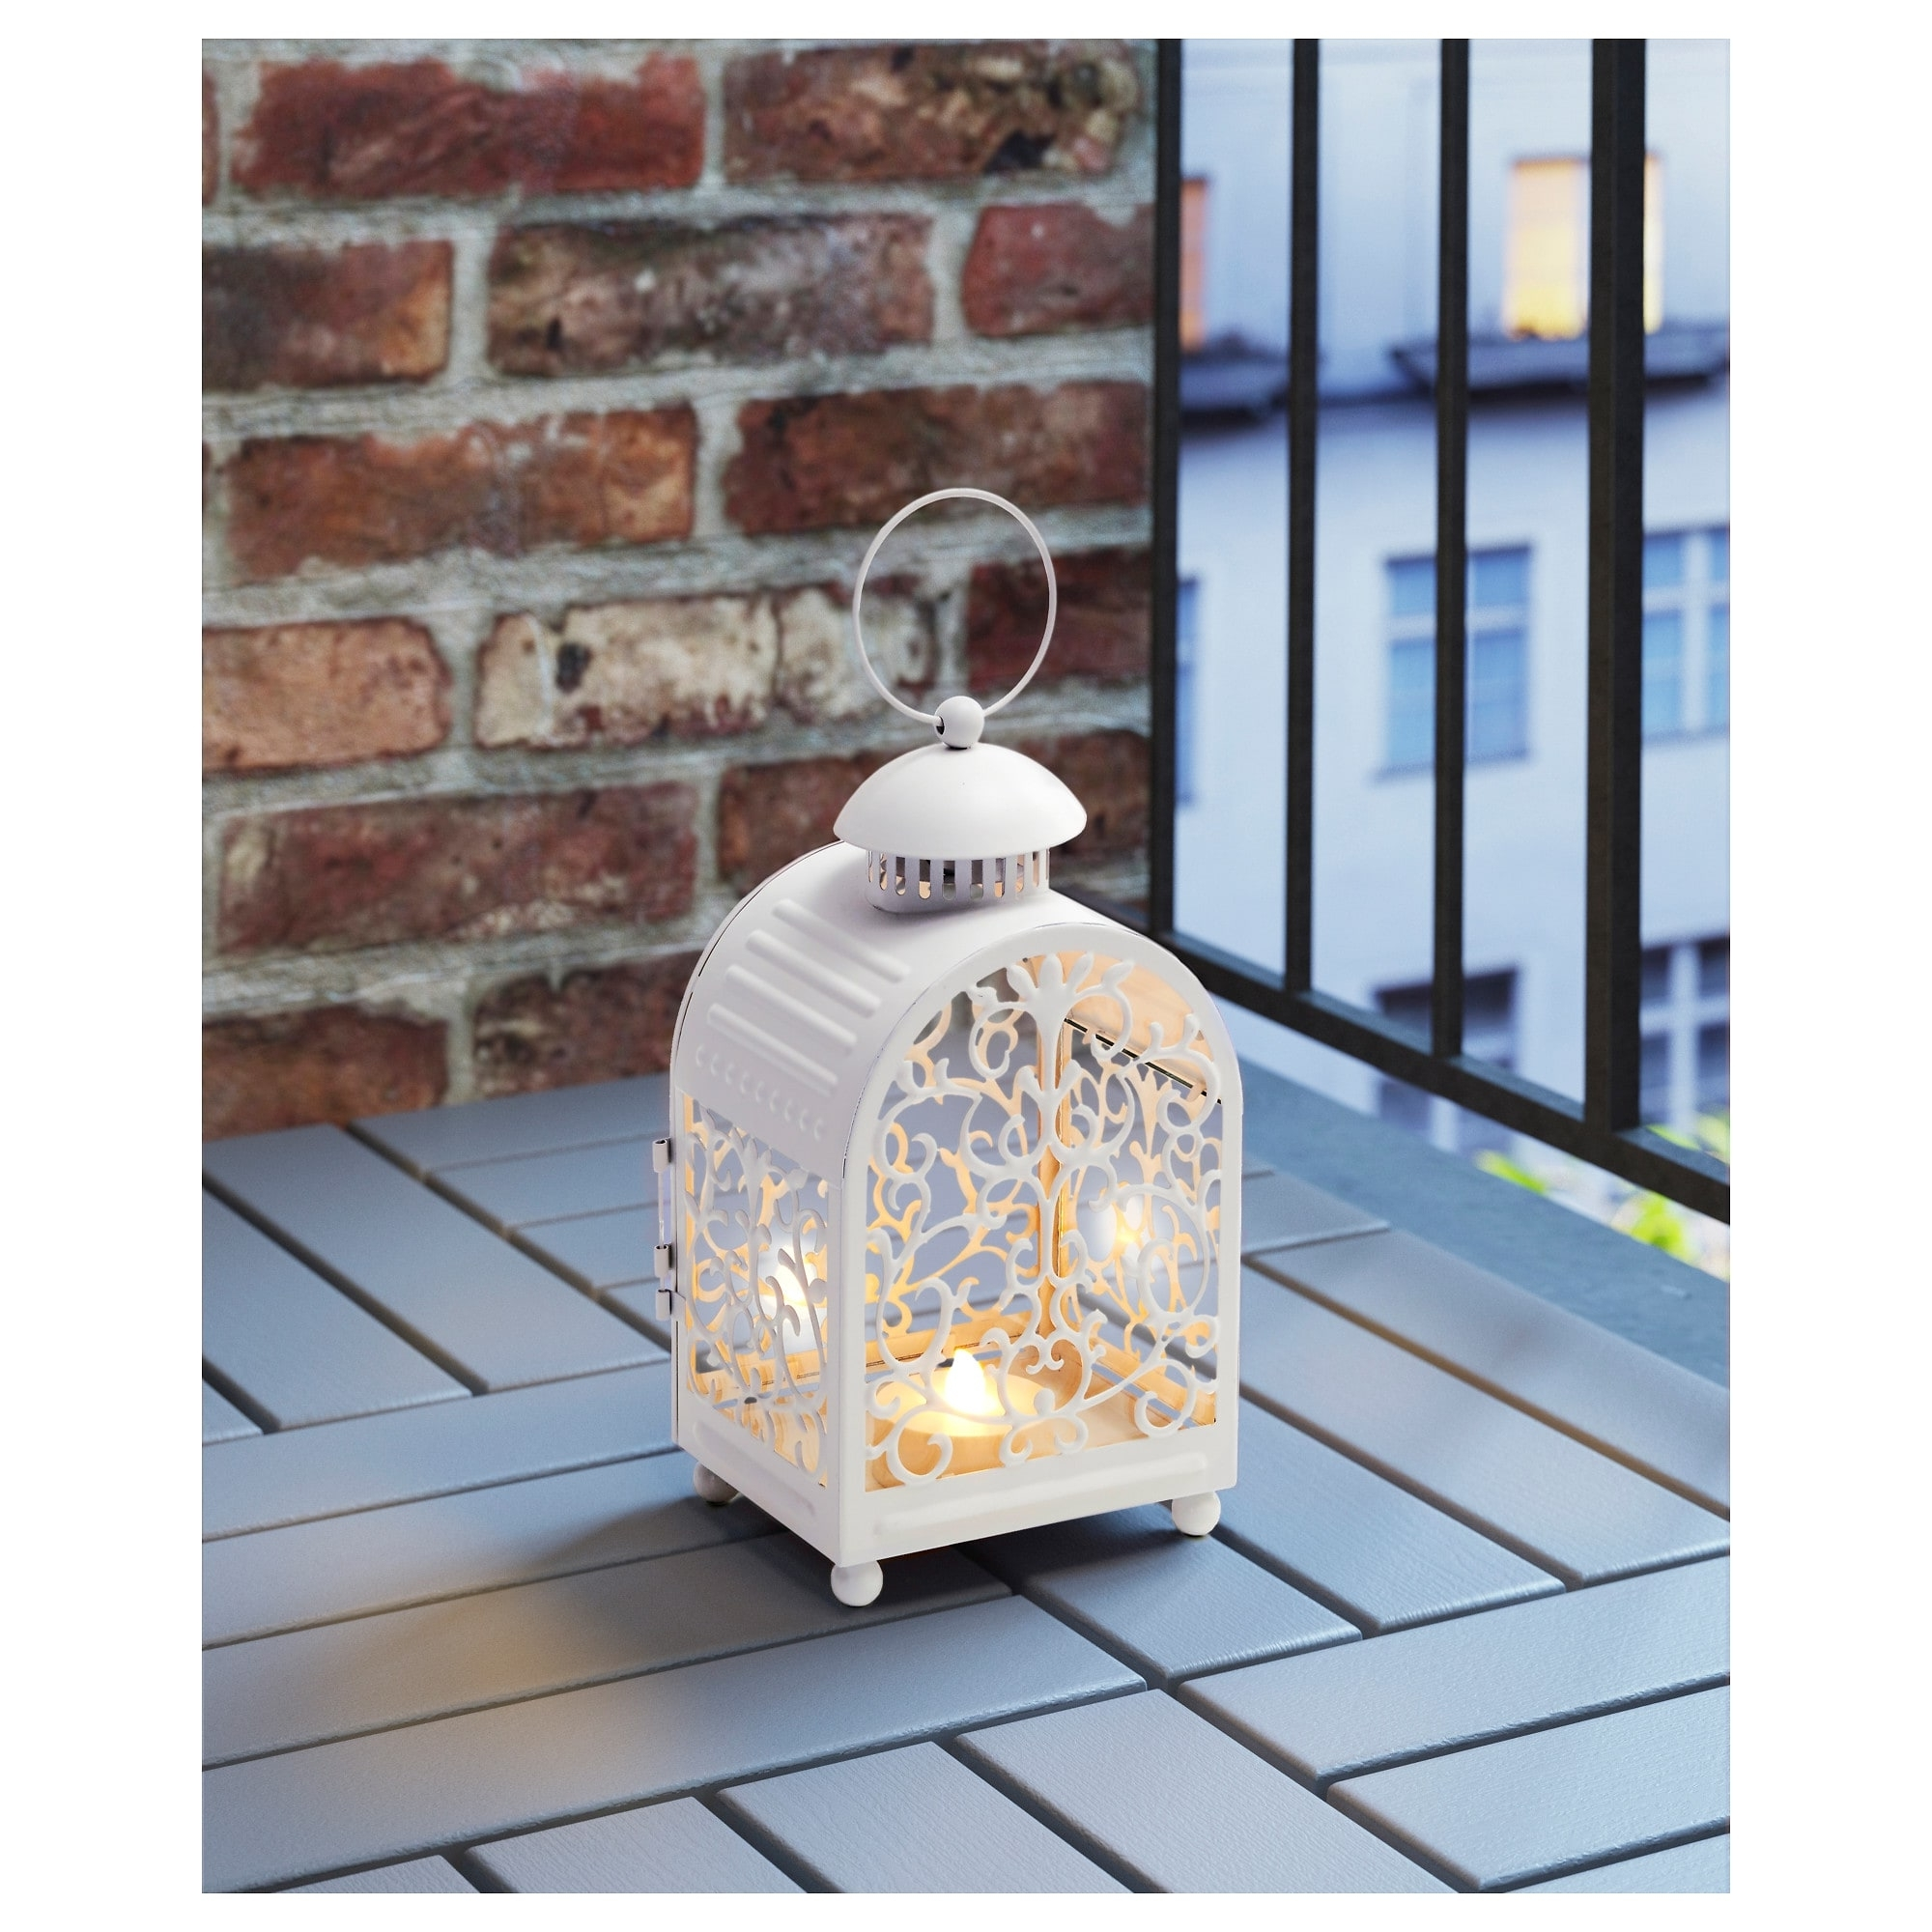 Outdoor Metal Lanterns For Candles Pertaining To Current Gottgöra Lantern For Candle In Metal Cup In/outdoor White 26 Cm – Ikea (Gallery 12 of 20)